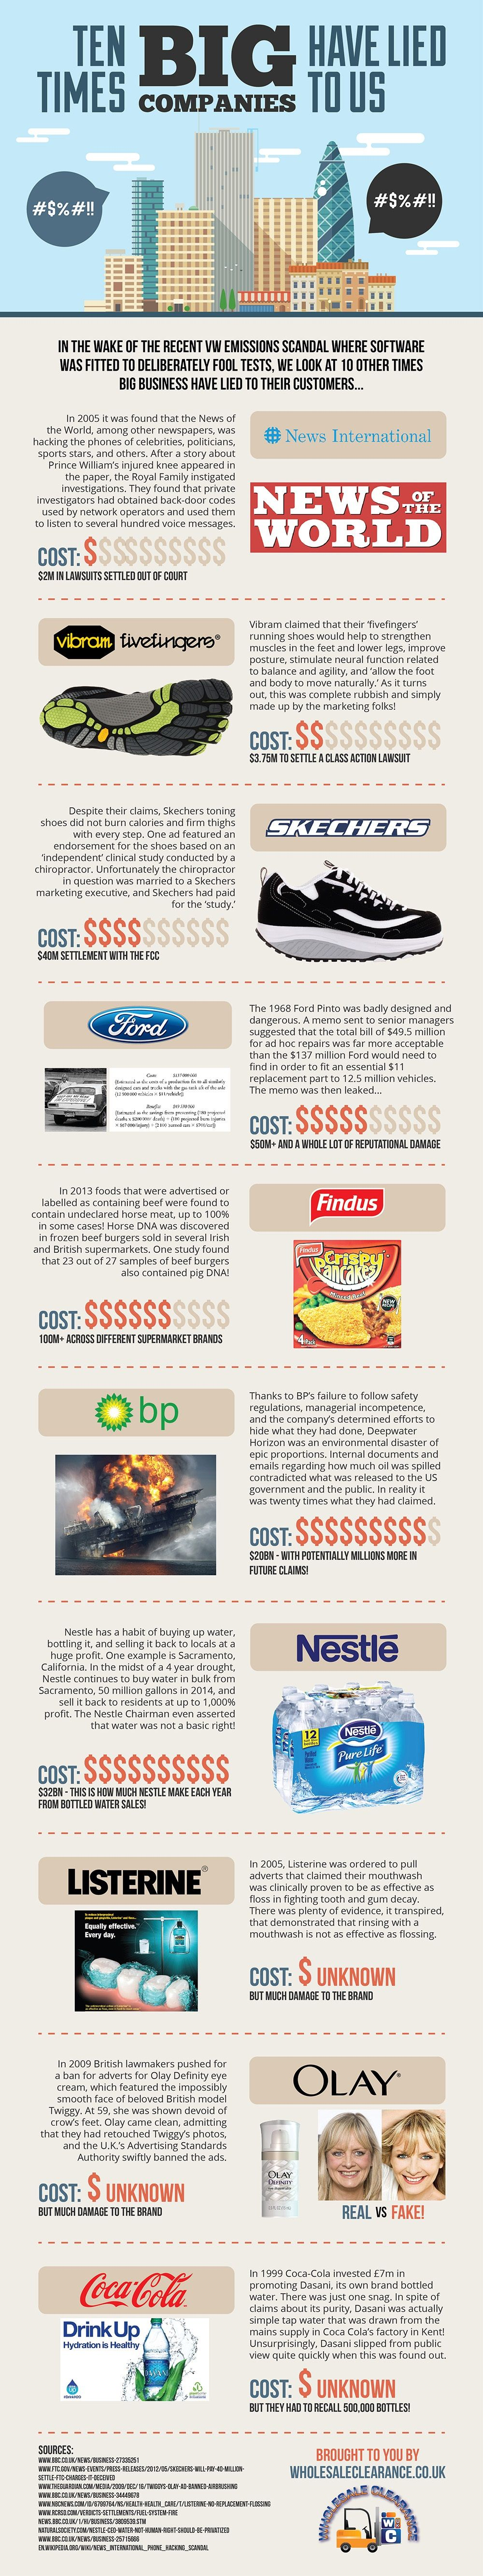 10 Big Companies That Have Lied #infographic